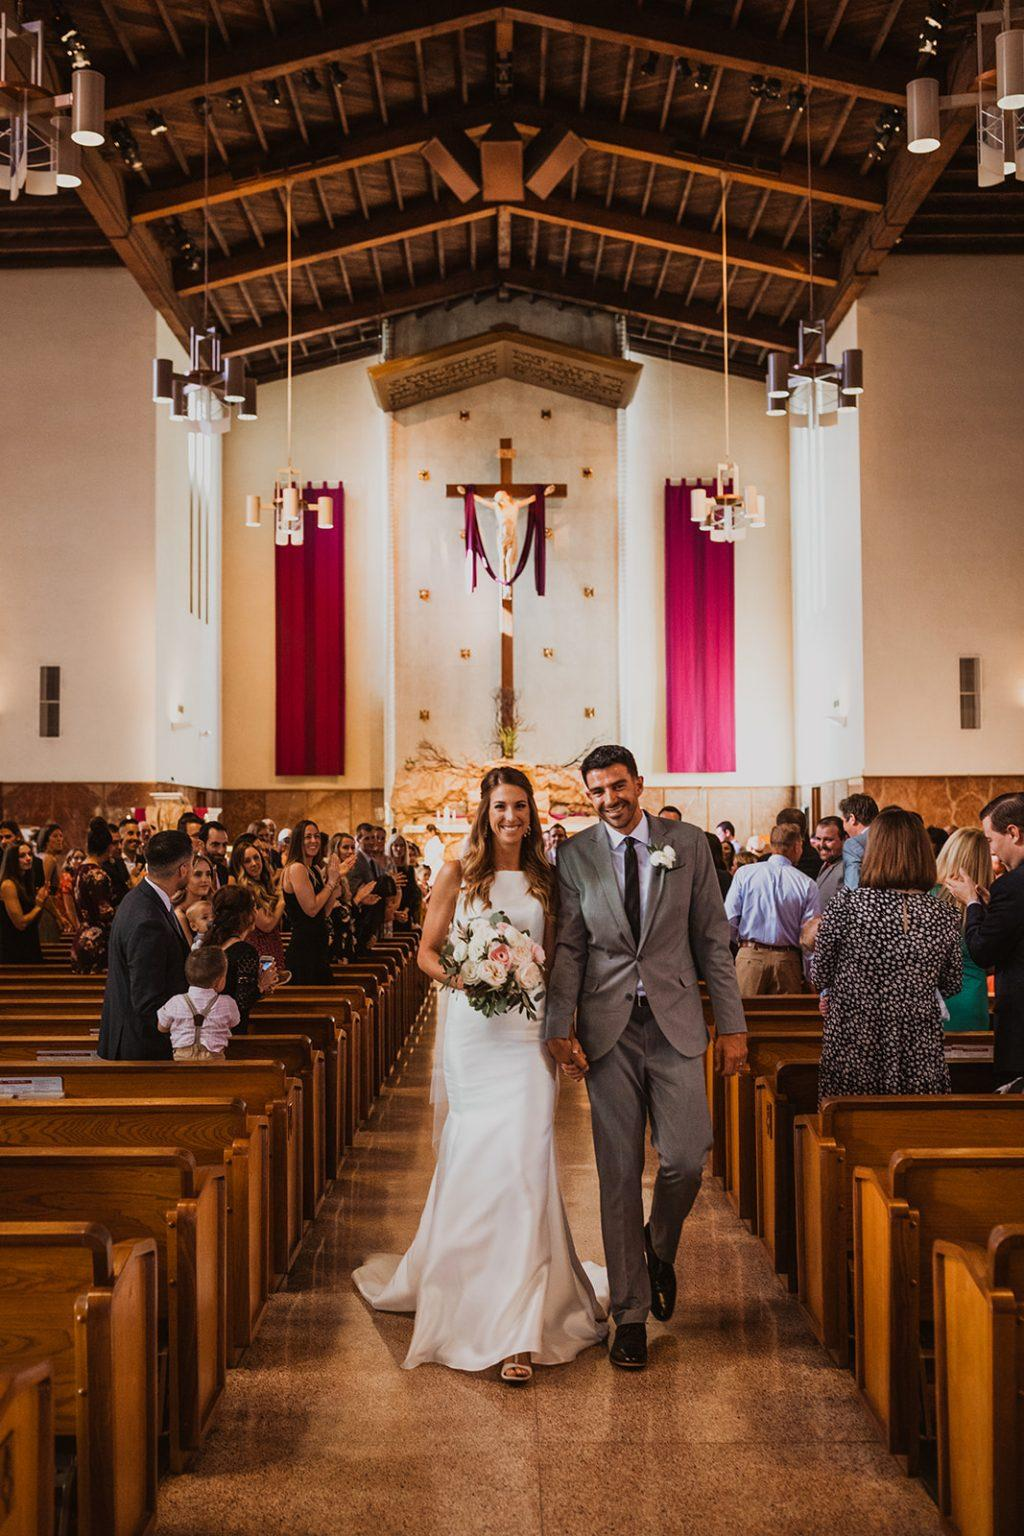 Larsen and her AVP tour pro husband, Bill Kolinske, walk down the aisle at their wedding this year. The two pro players got engaged at center court during a tournament in 2019. Photo courtesy of Kelley Larsen